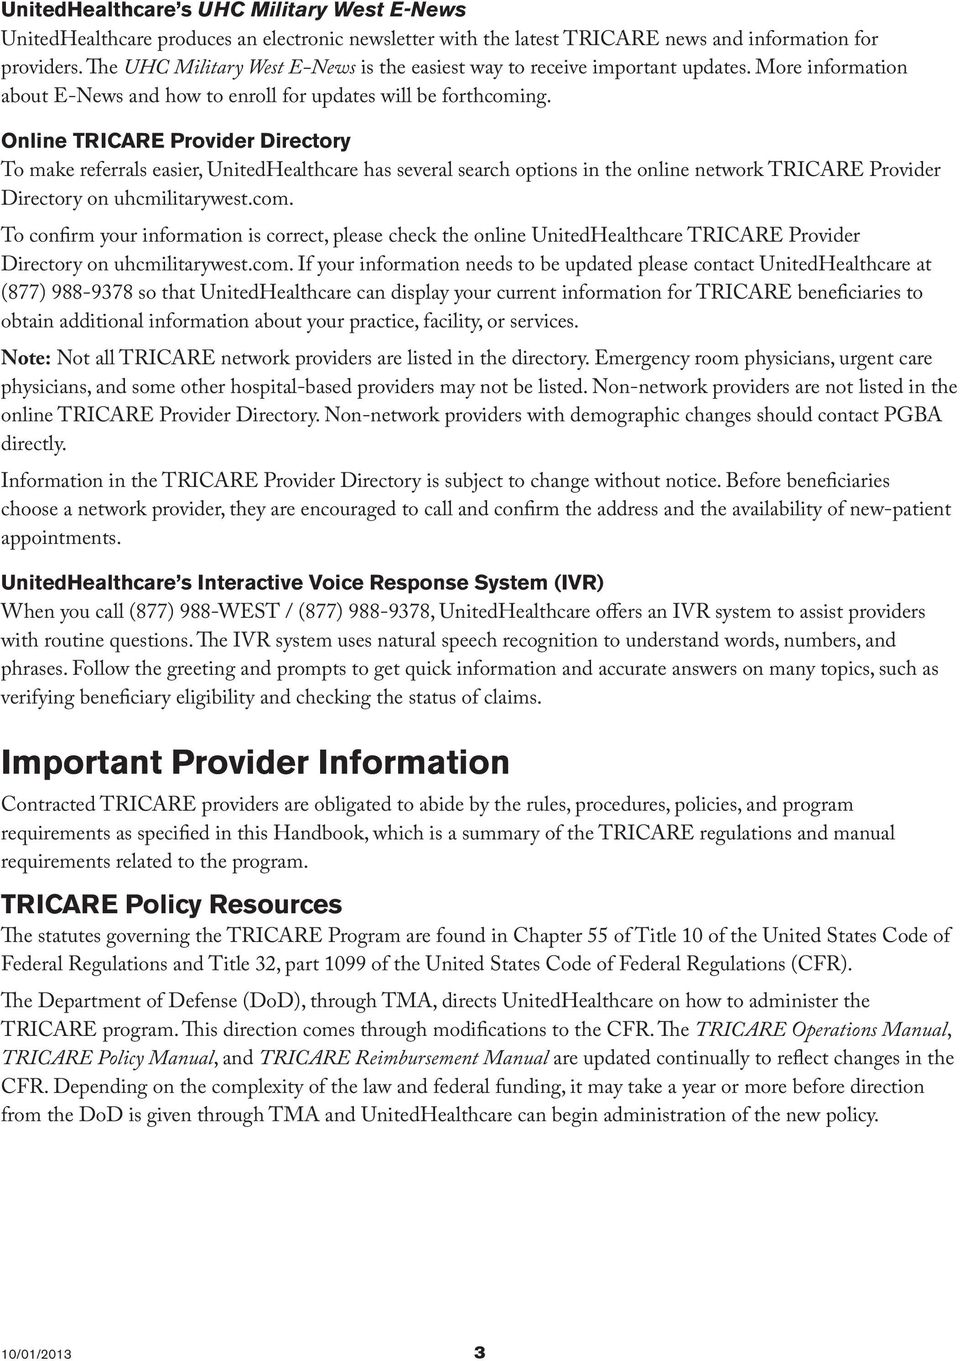 Online TRICARE Provider Directory To make referrals easier, UnitedHealthcare has several search options in the online network TRICARE Provider Directory on uhcmilitarywest.com.